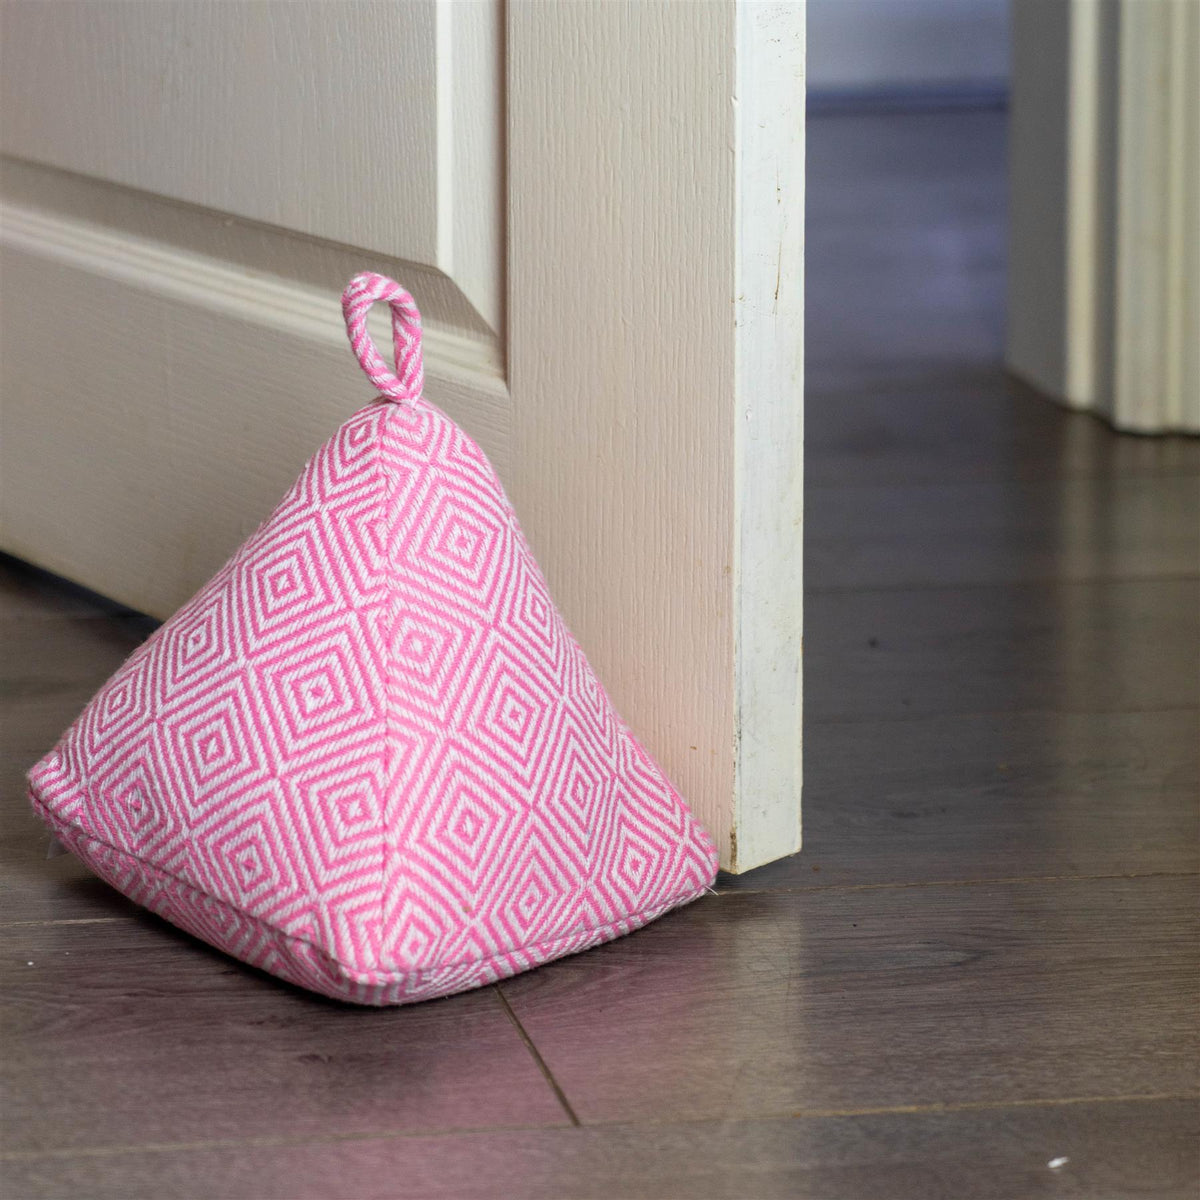 Nicola Spring Decorative Door Stop Pink 20cm Interior Door Lifestyle